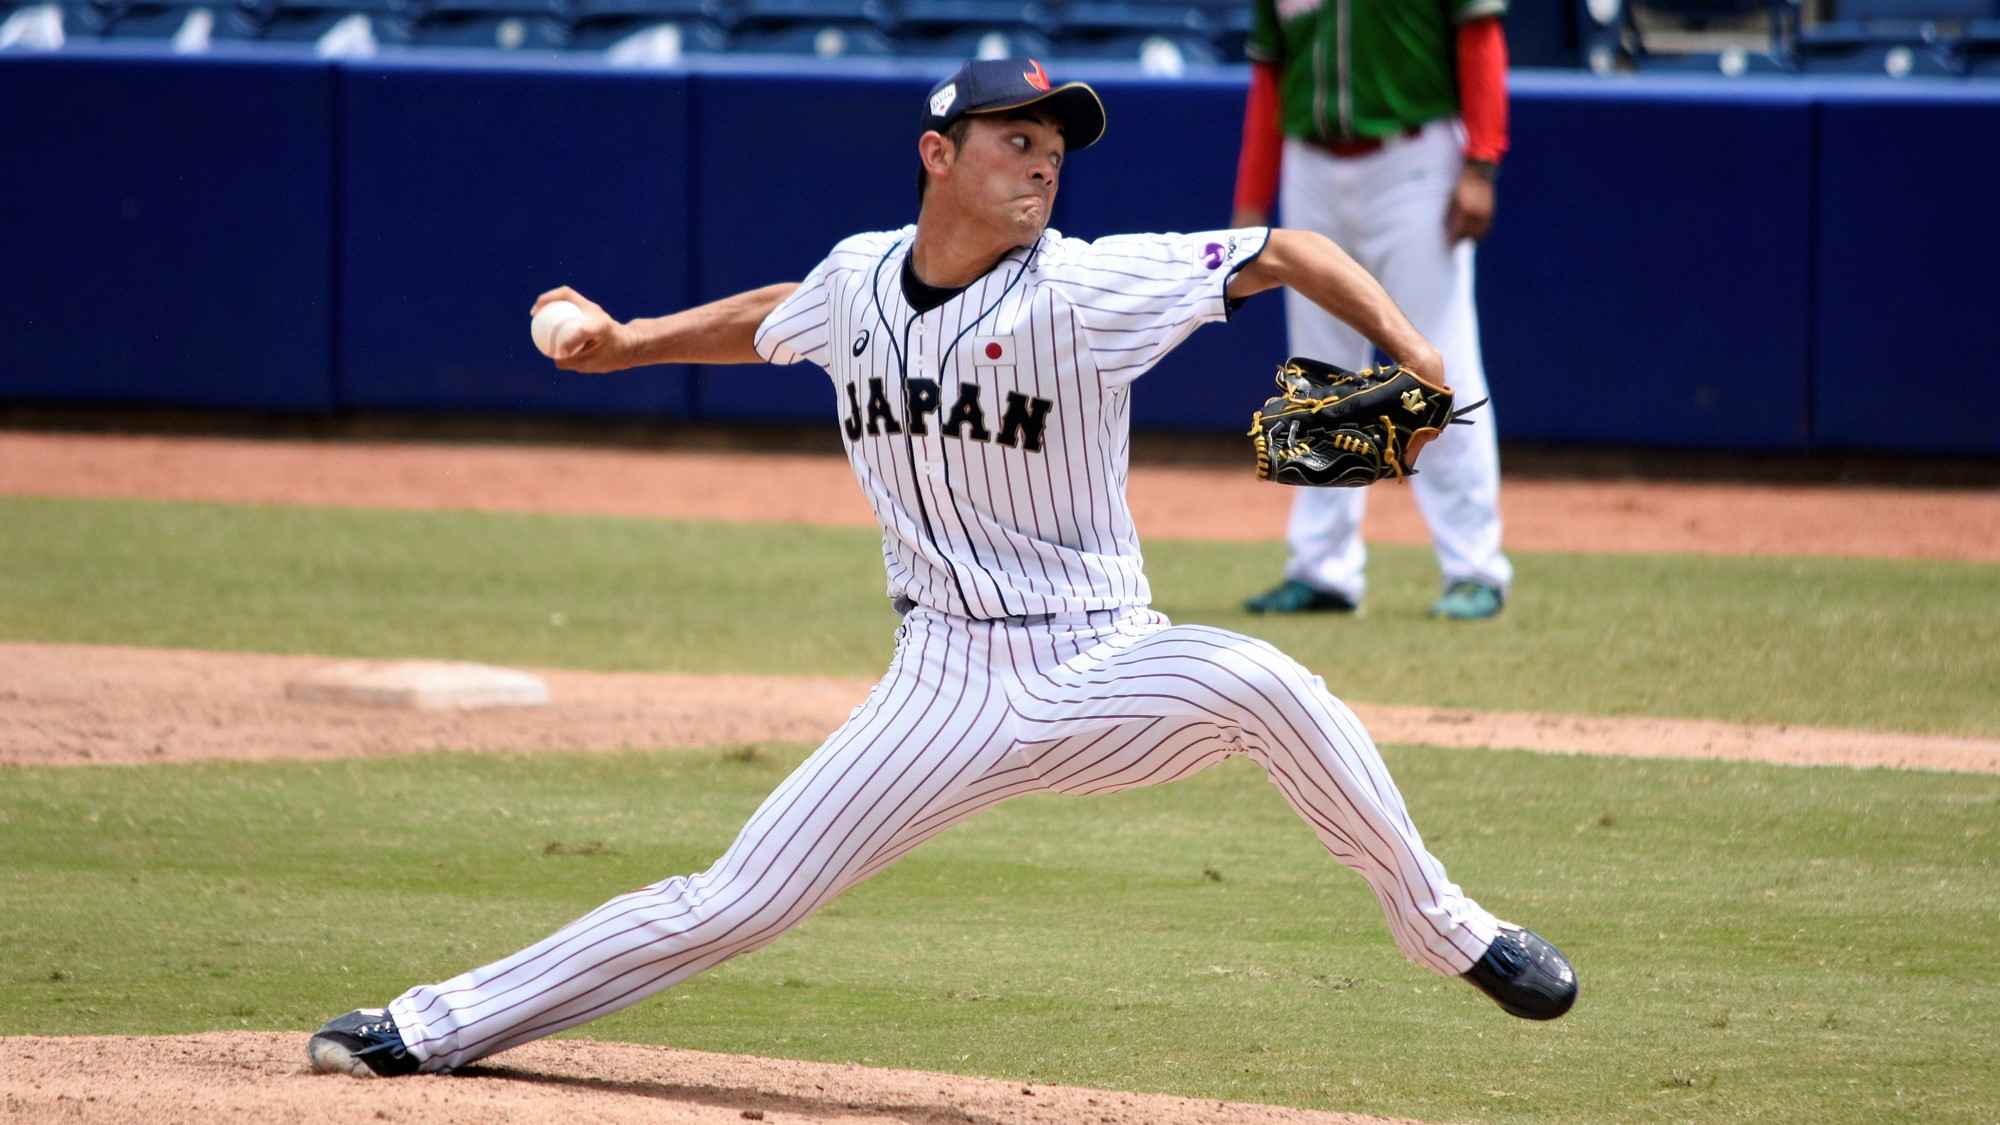 Left hander Kakeru Narita got a key bases loaded out for Japan coming from the bull pen